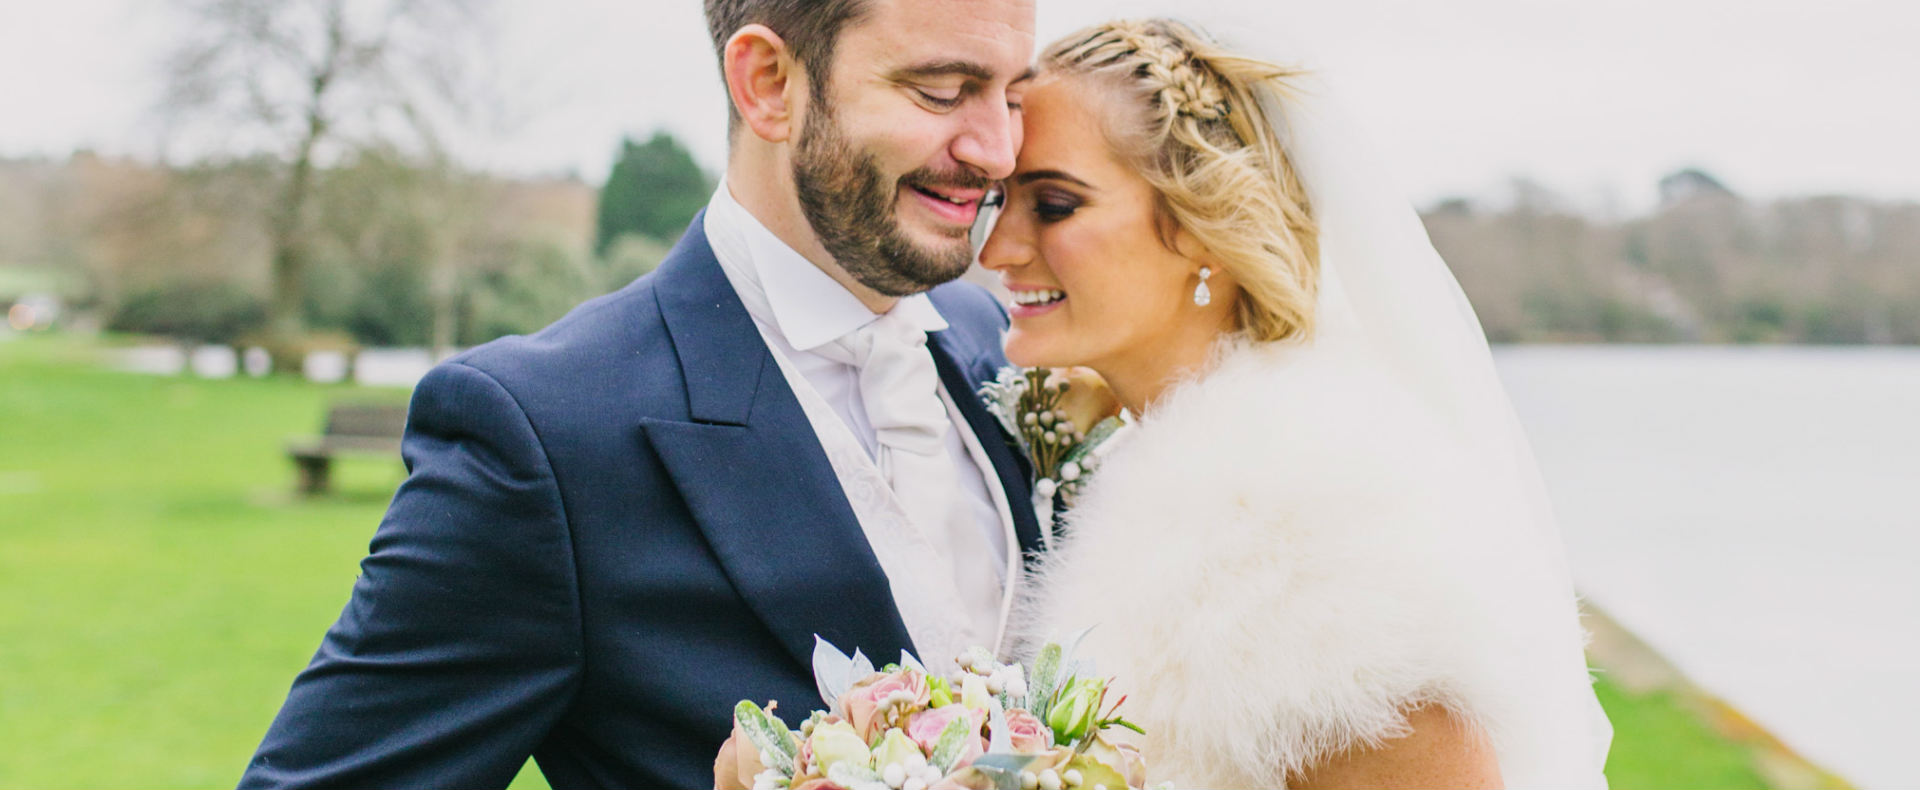 Why Choose A Winter Wedding at the Montagu Arms Hotel